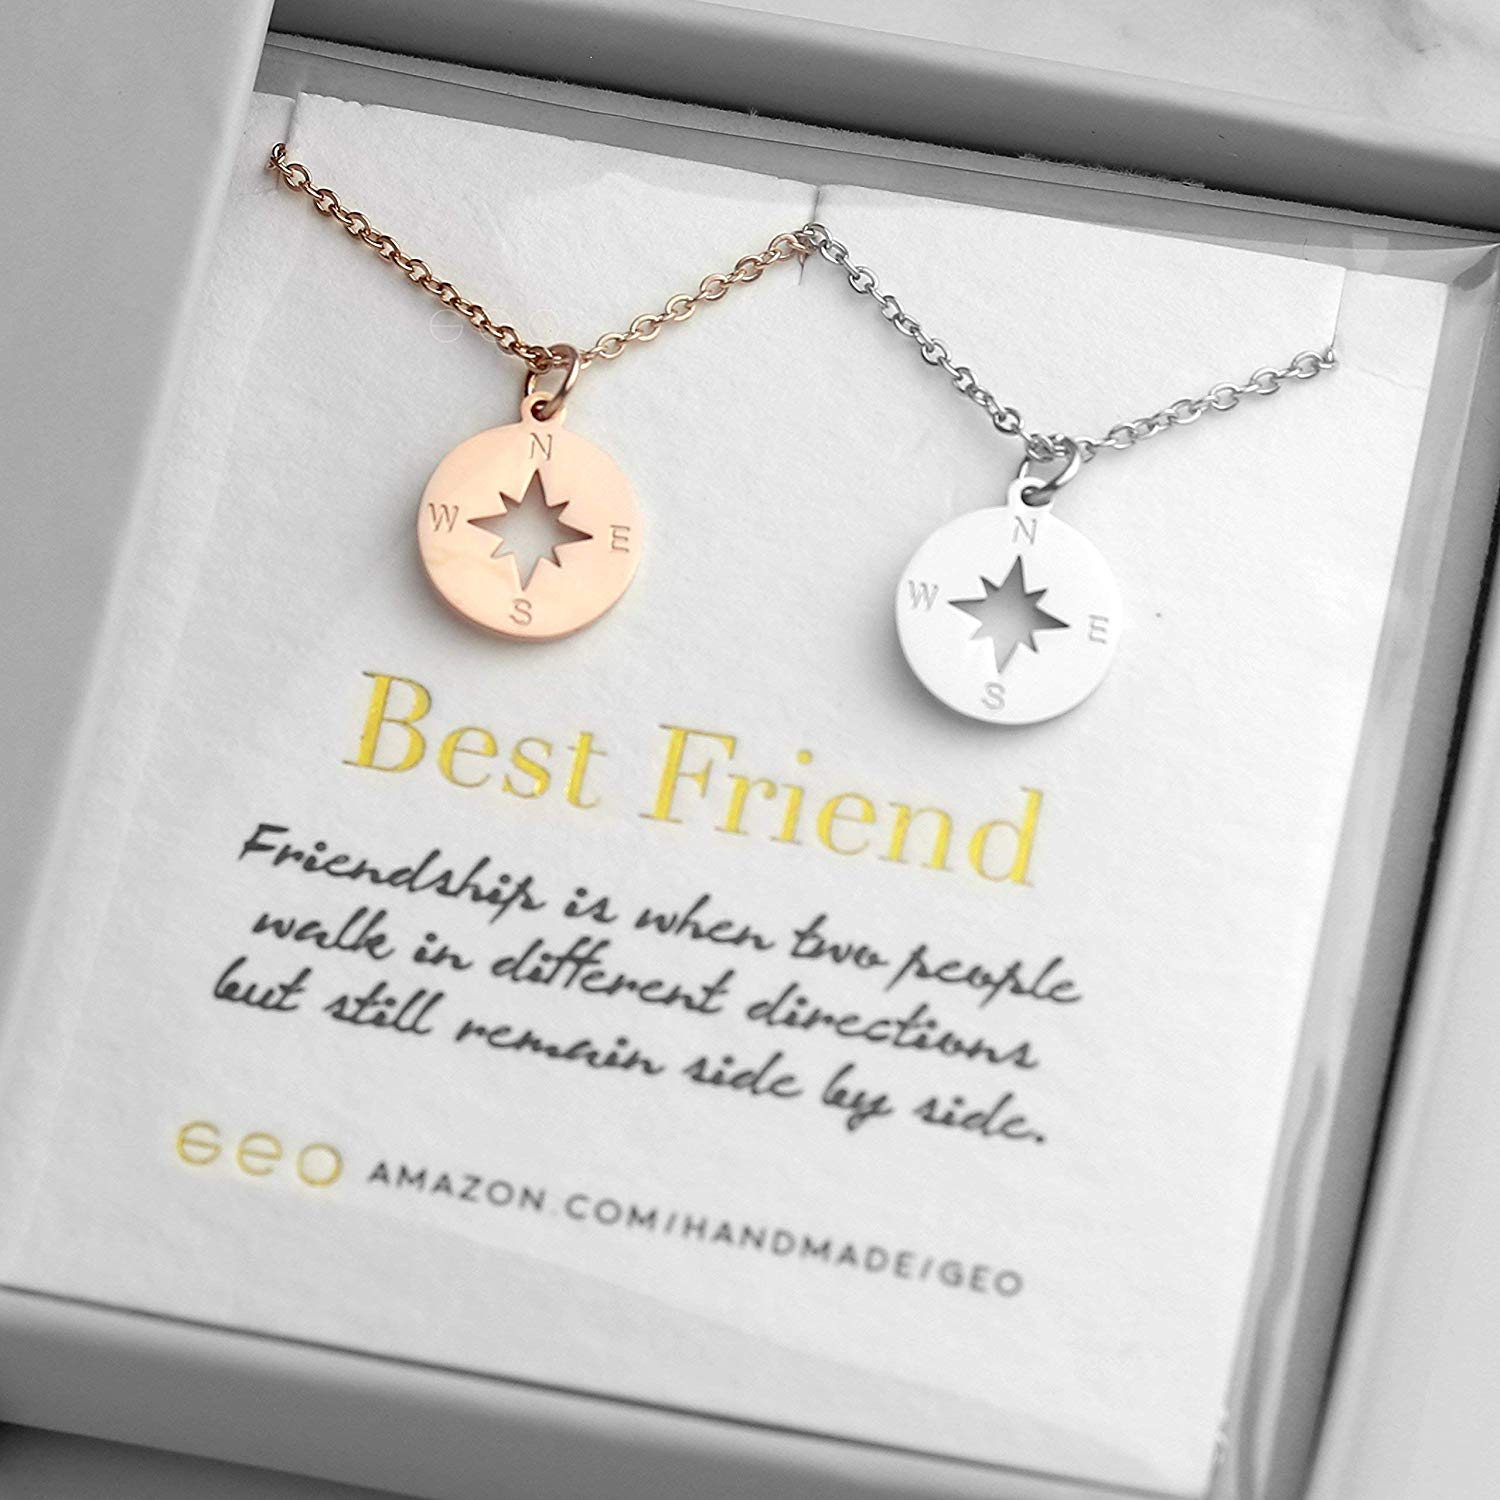 c1dc4517b61a55 Get Quotations · Rose Gold And Silver Compass Necklaces For Women Best  Friend Necklaces For Two Best Friend Gifts